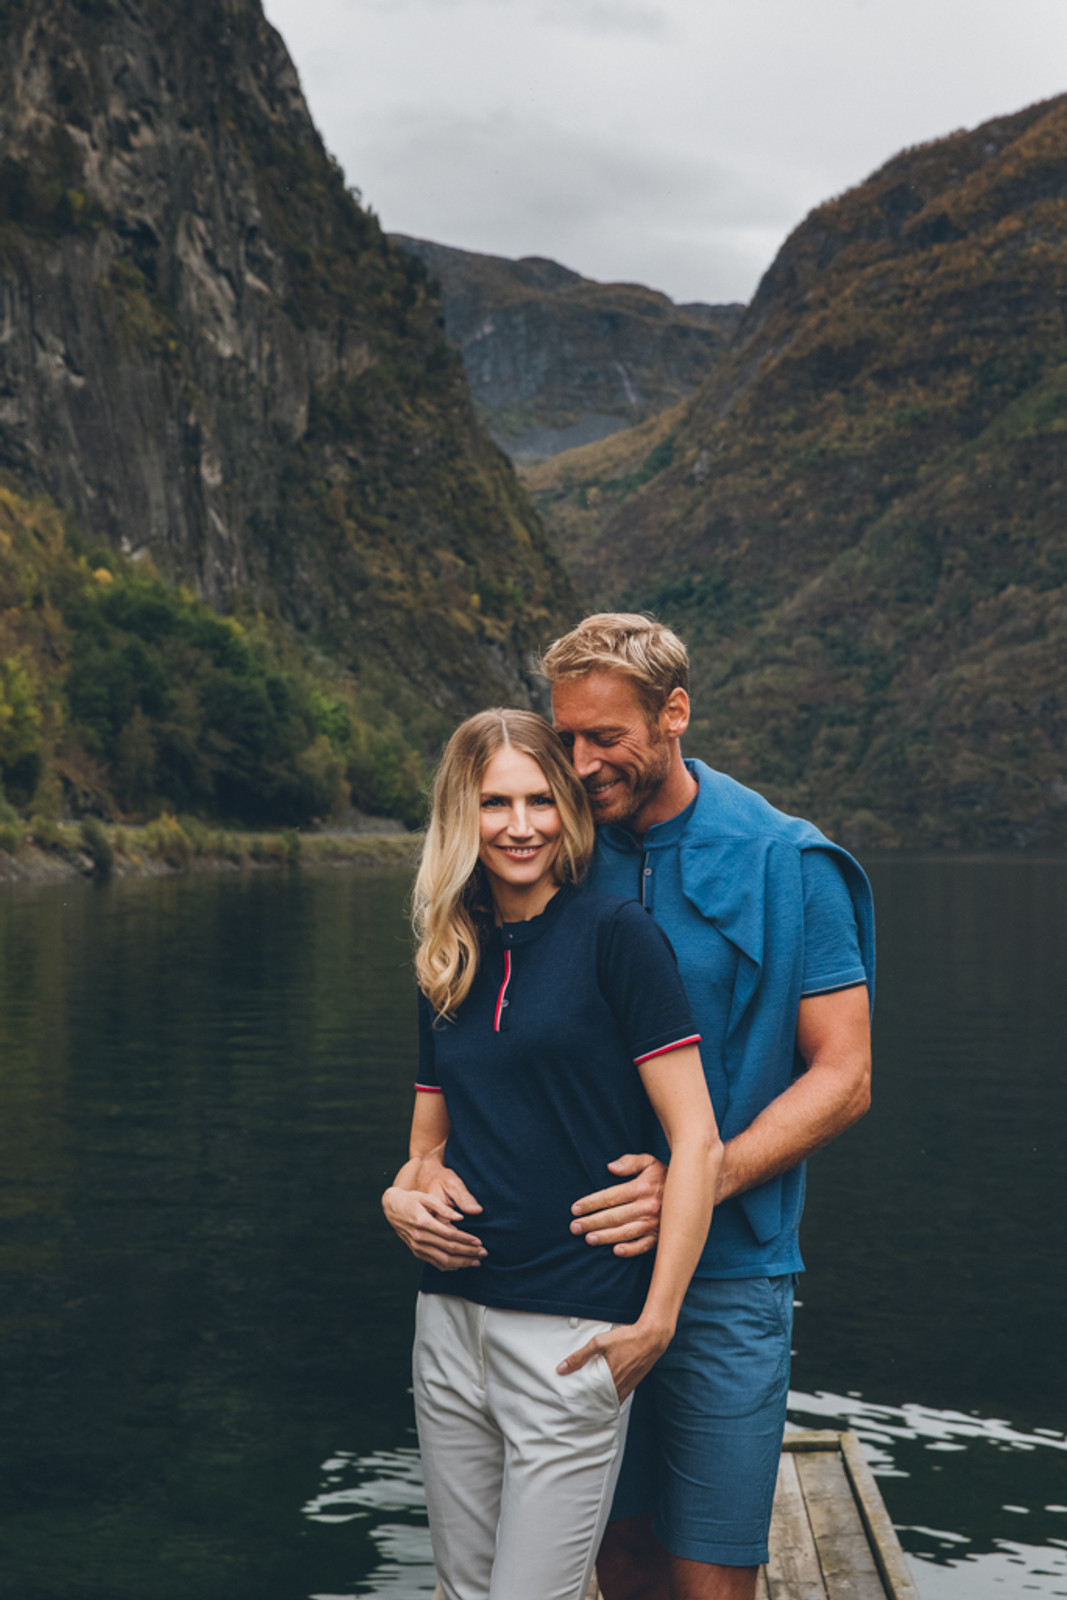 Couple standing on dock wearing Dale of Norway's Fredrikke ladies T-shirt in Navy/Red Rose/Off White, 93841-C and Fredrik mens T-shirt in Medium Blue Mel/Light Grey/Off White Mel/Navy Mel, 93771-H